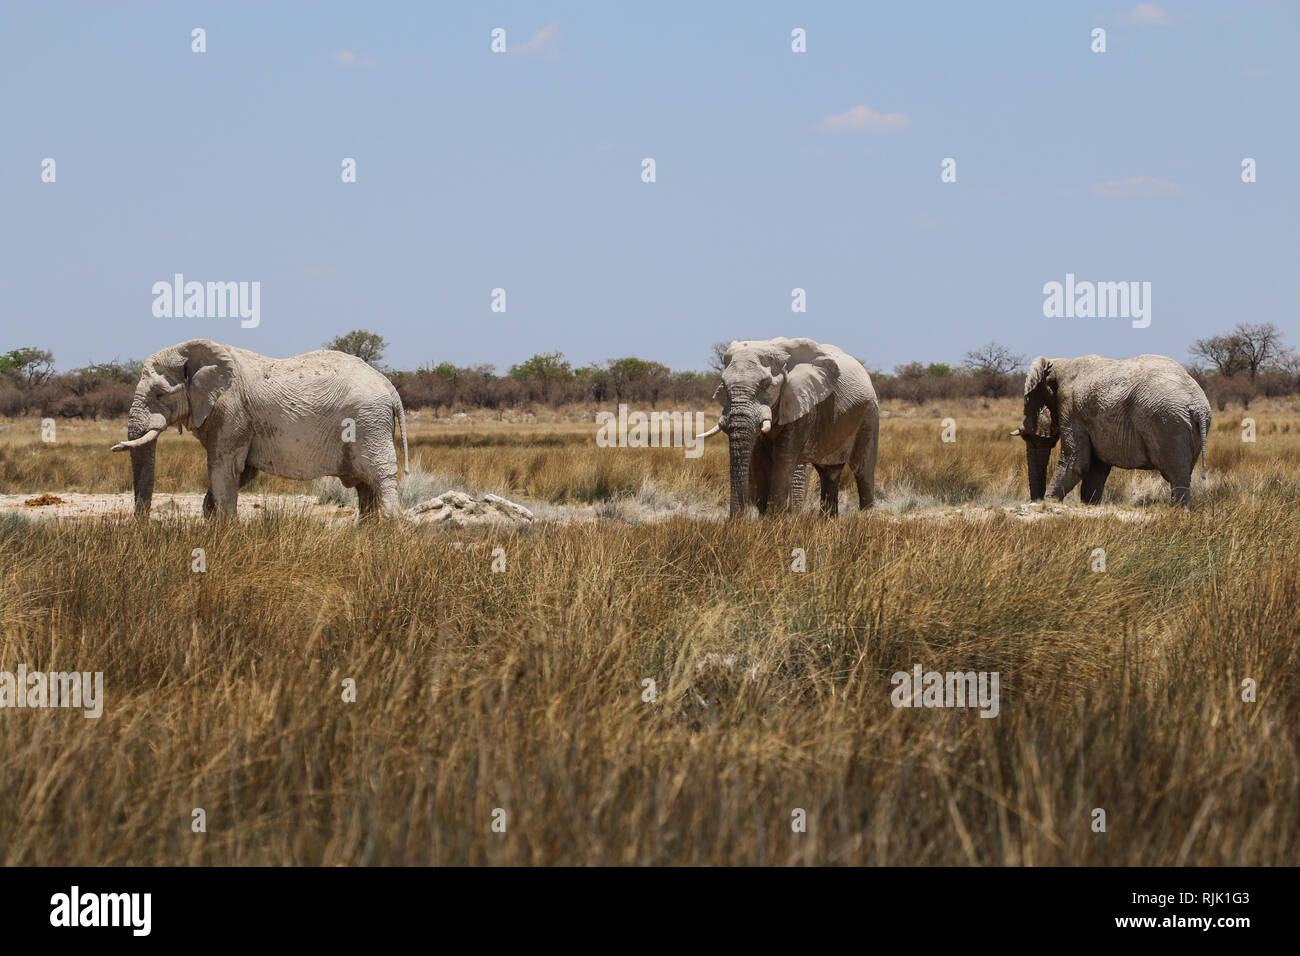 Elefantenbullen im Etosha-Nationalpark Stock Photo